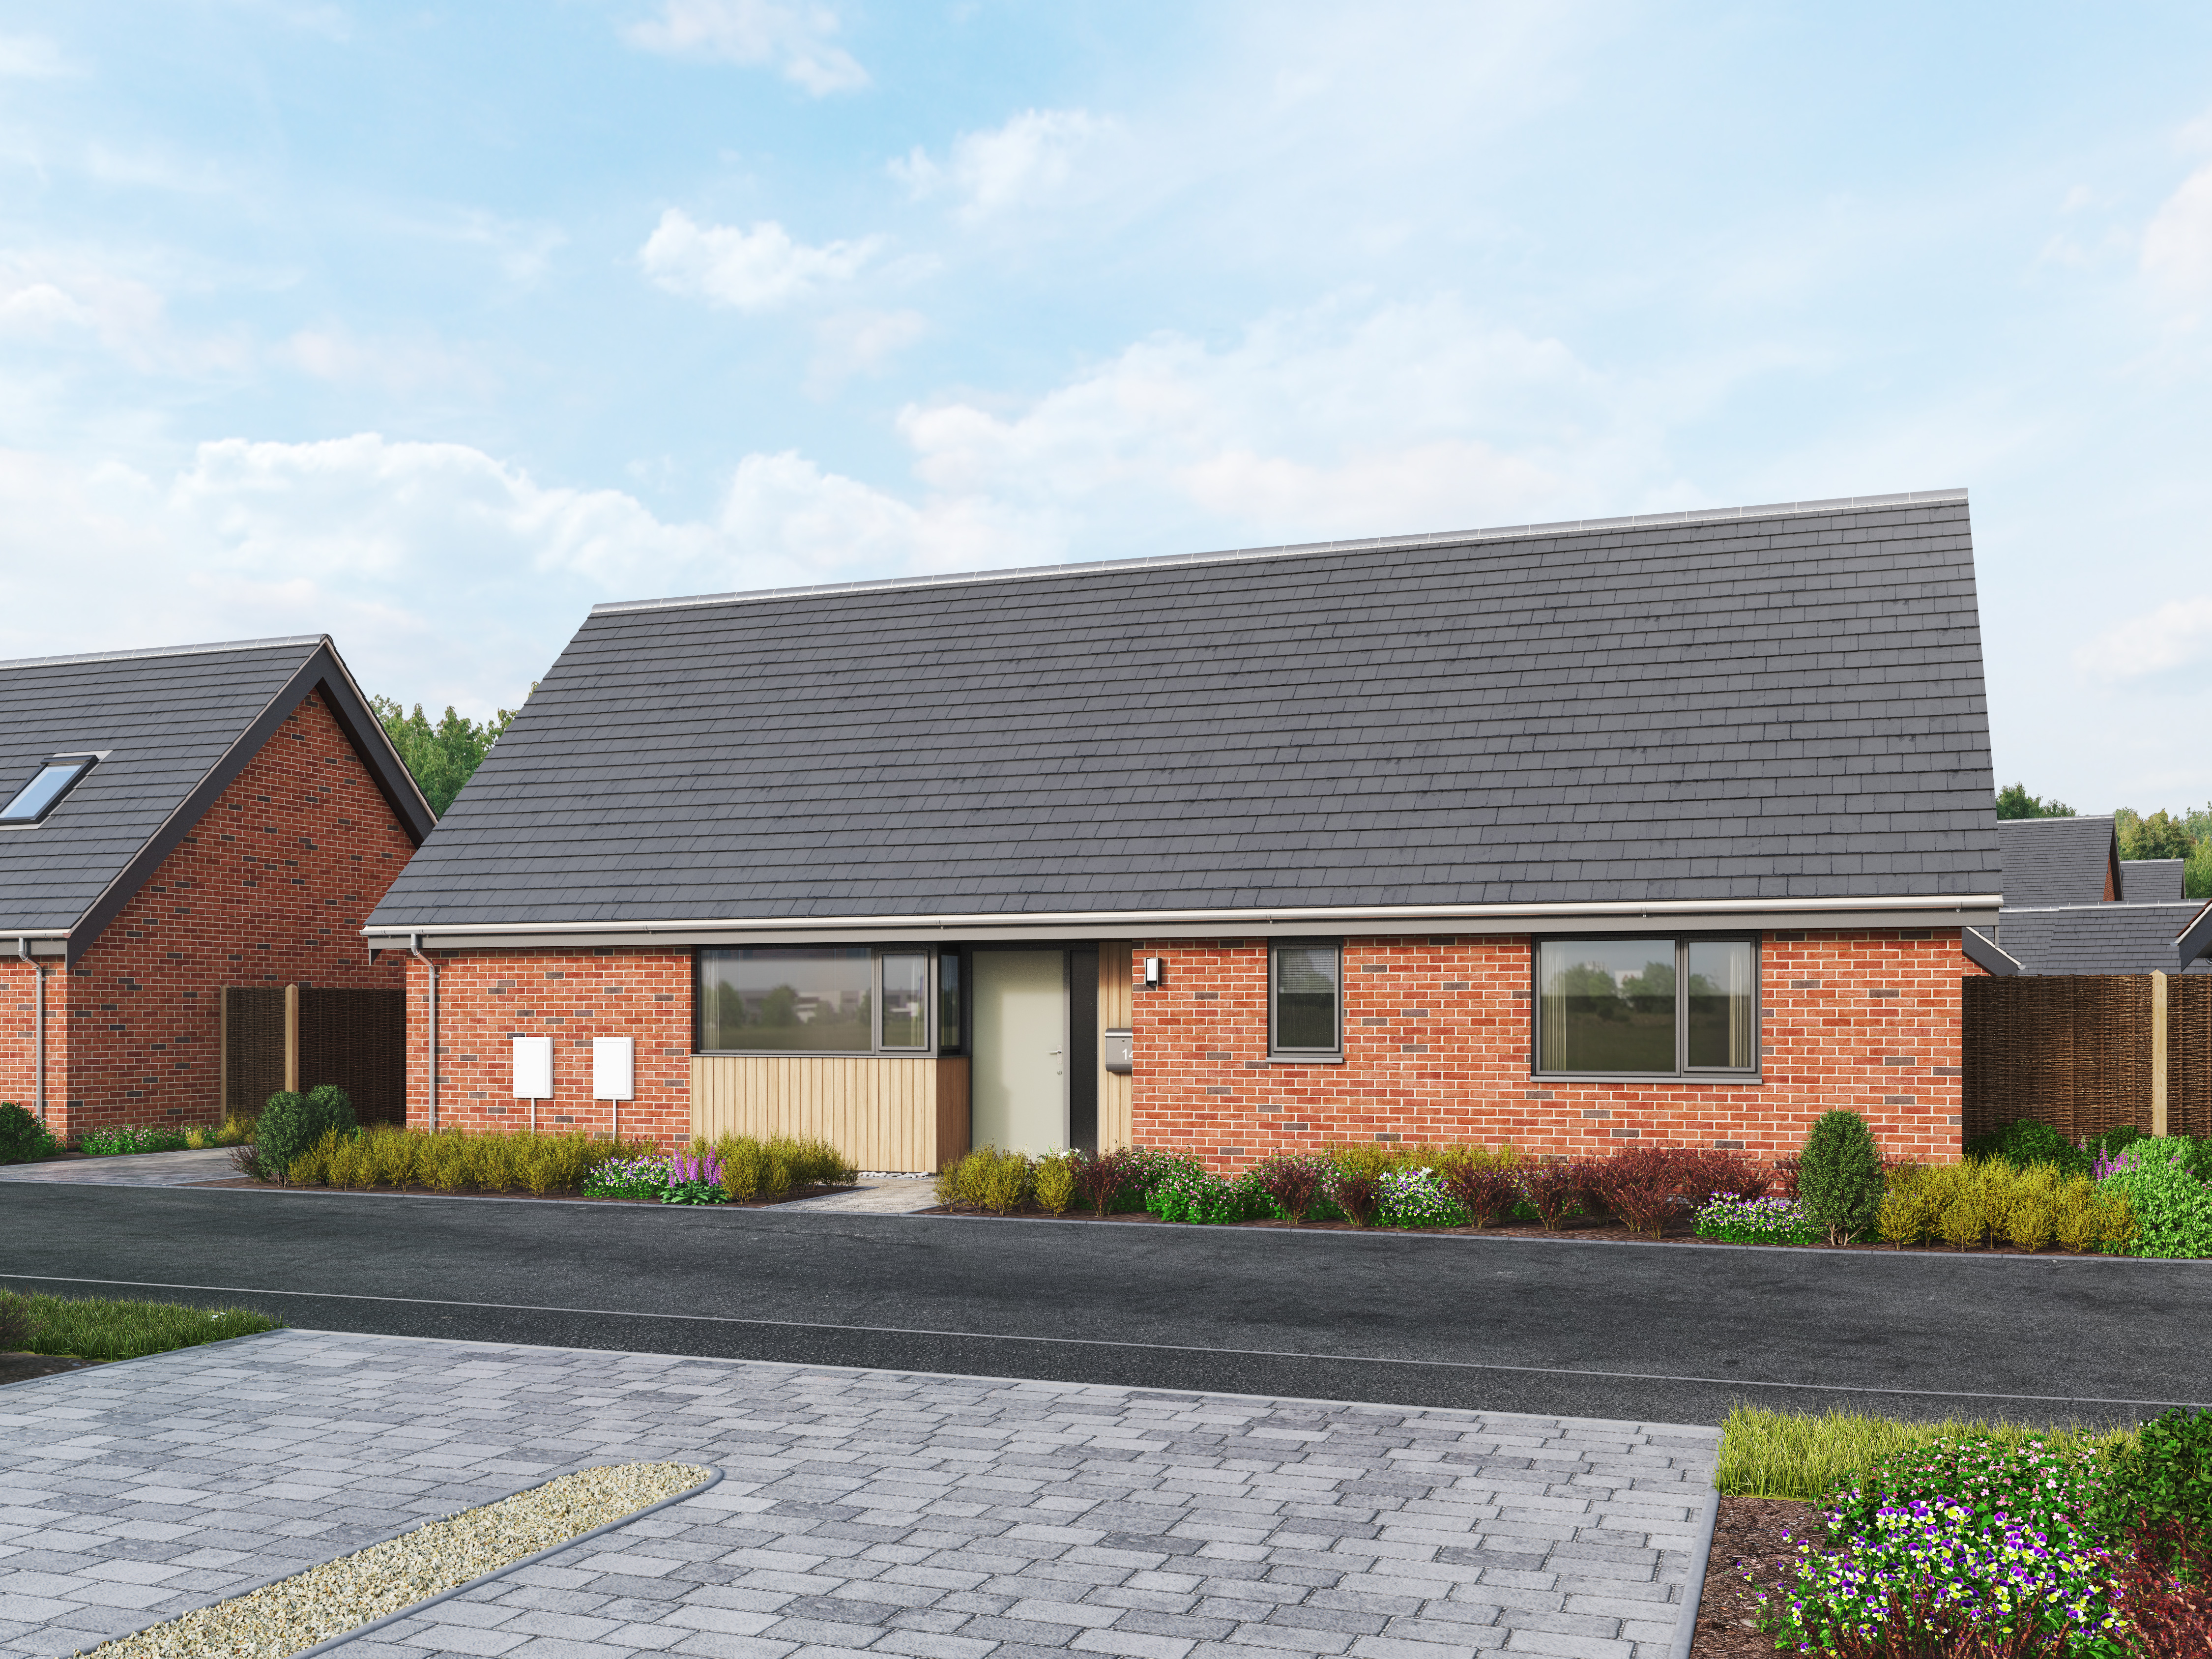 News From Good Goods Co Bungalows: Plot 179 » A Detached Three Bedroom Bungalow With A Double